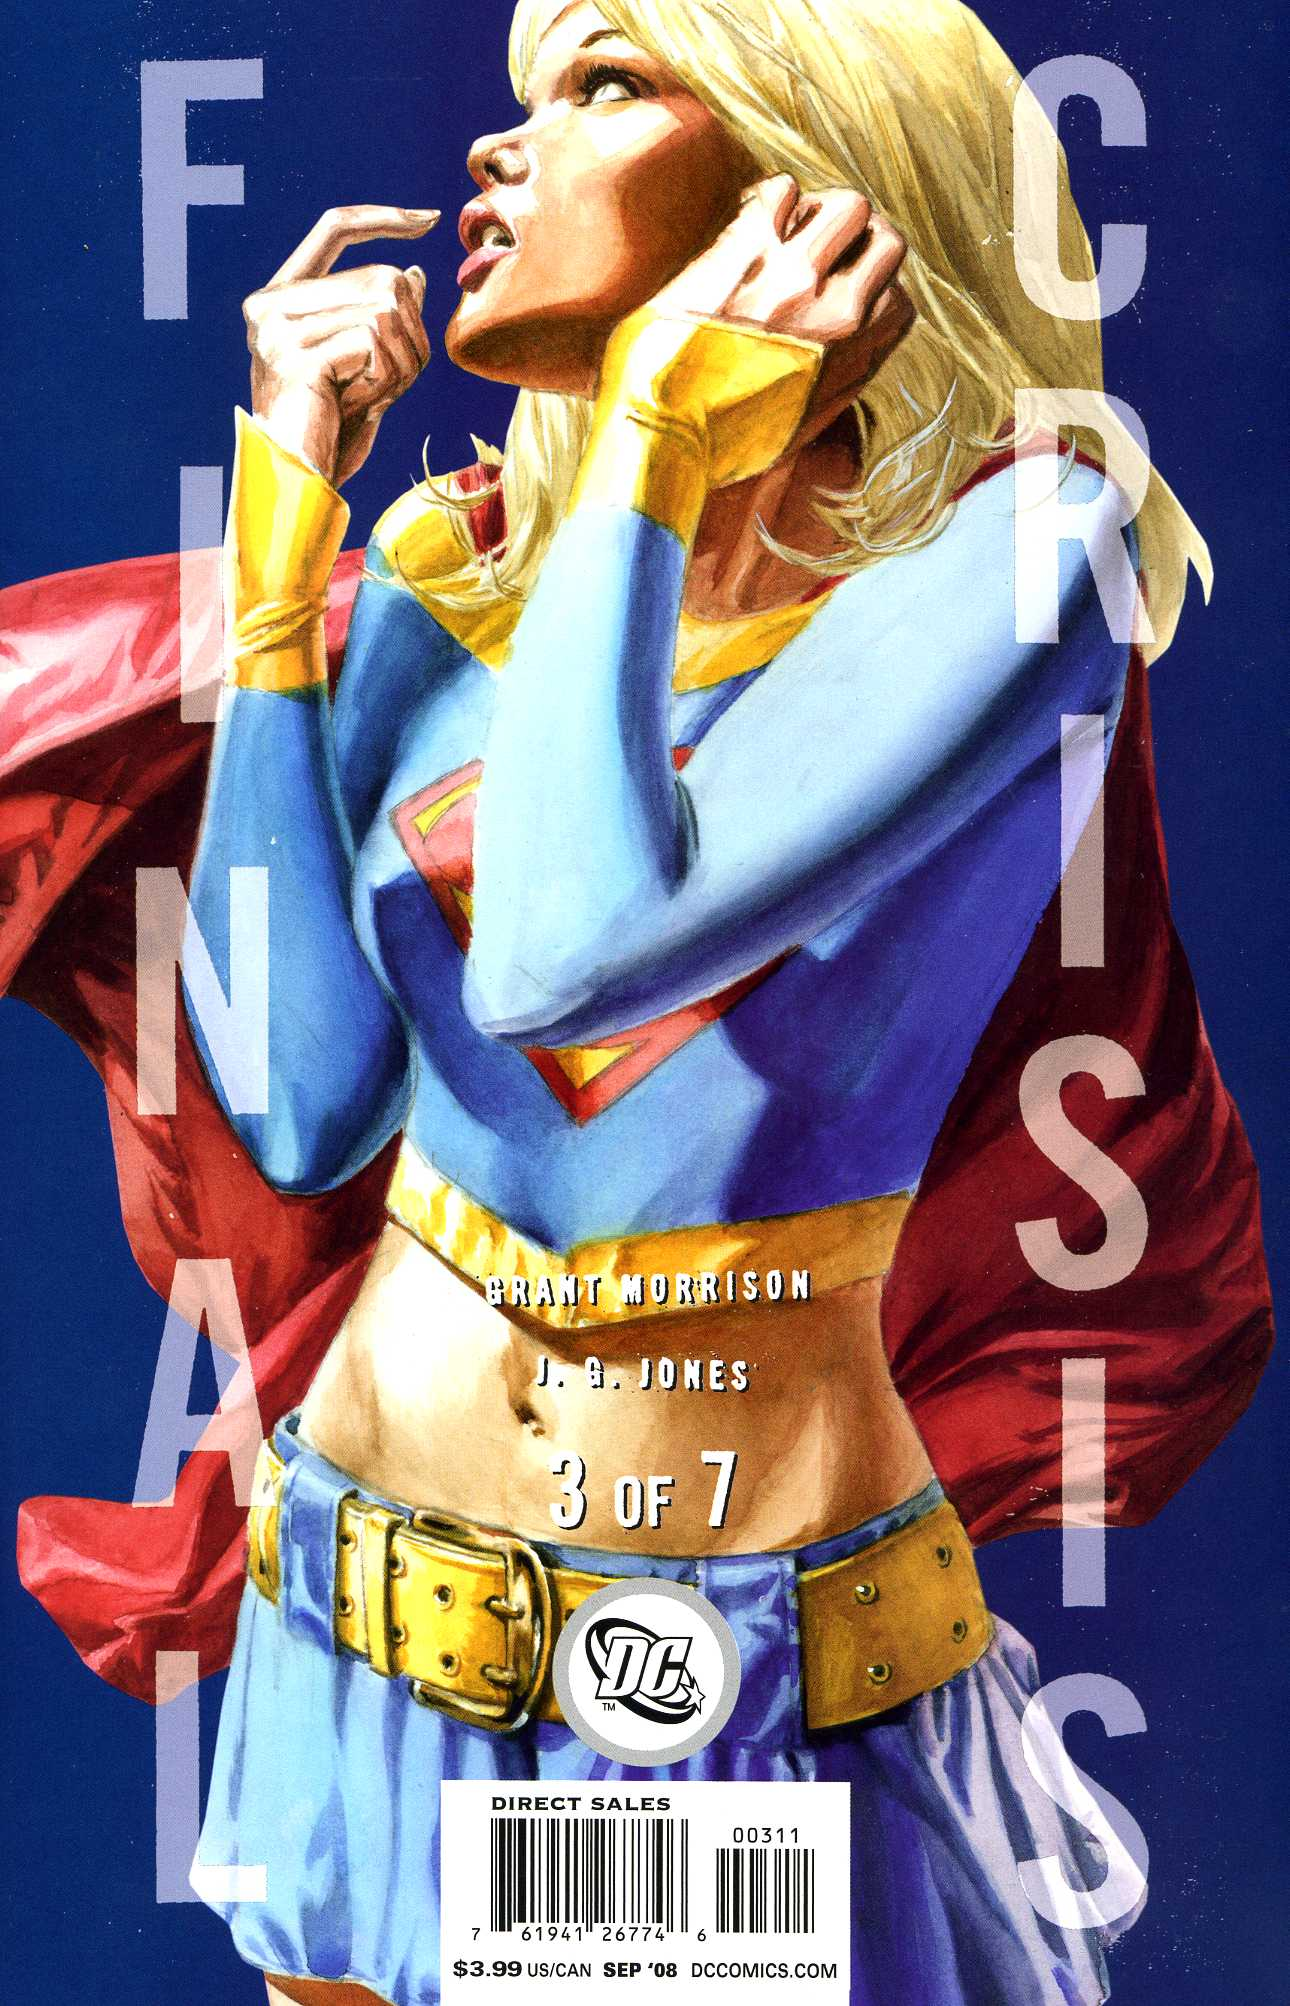 http://readrant.files.wordpress.com/2008/08/final-crisis-3-cover.jpg